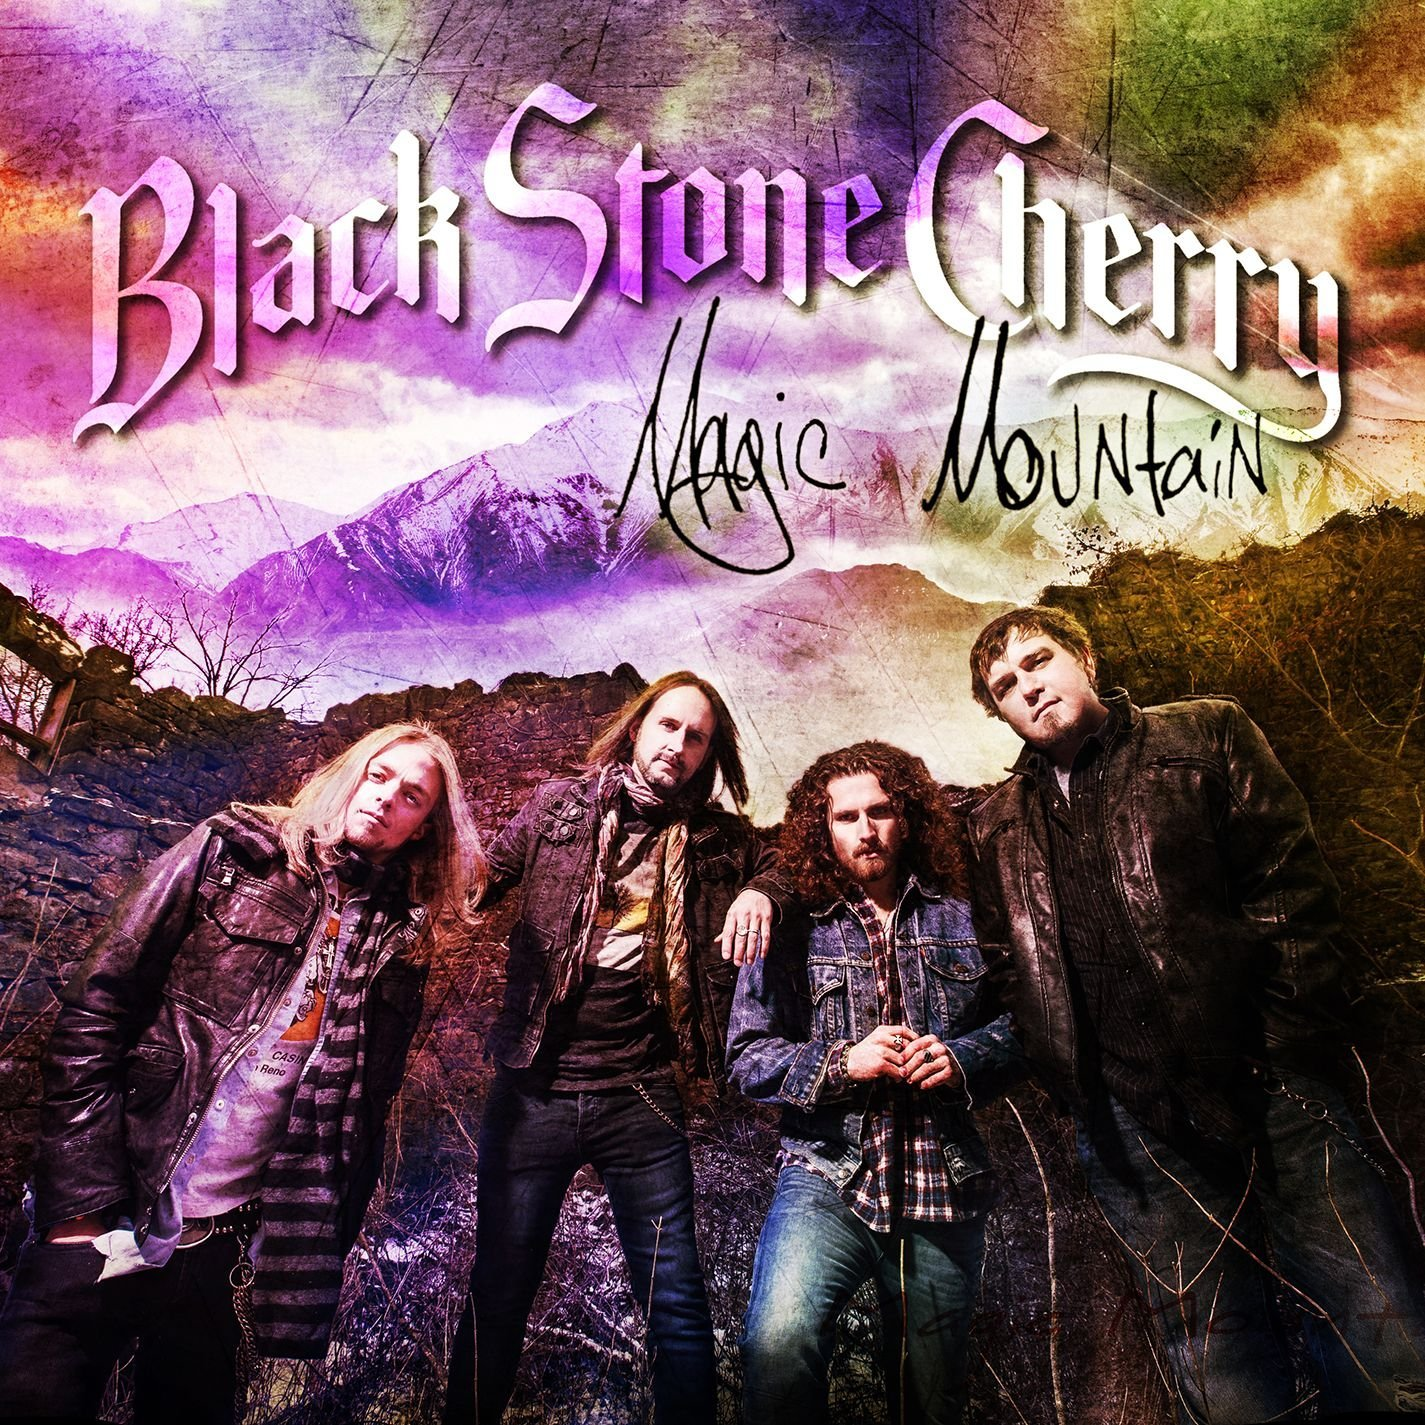 Magic Mountain (Black Stone Cherry)